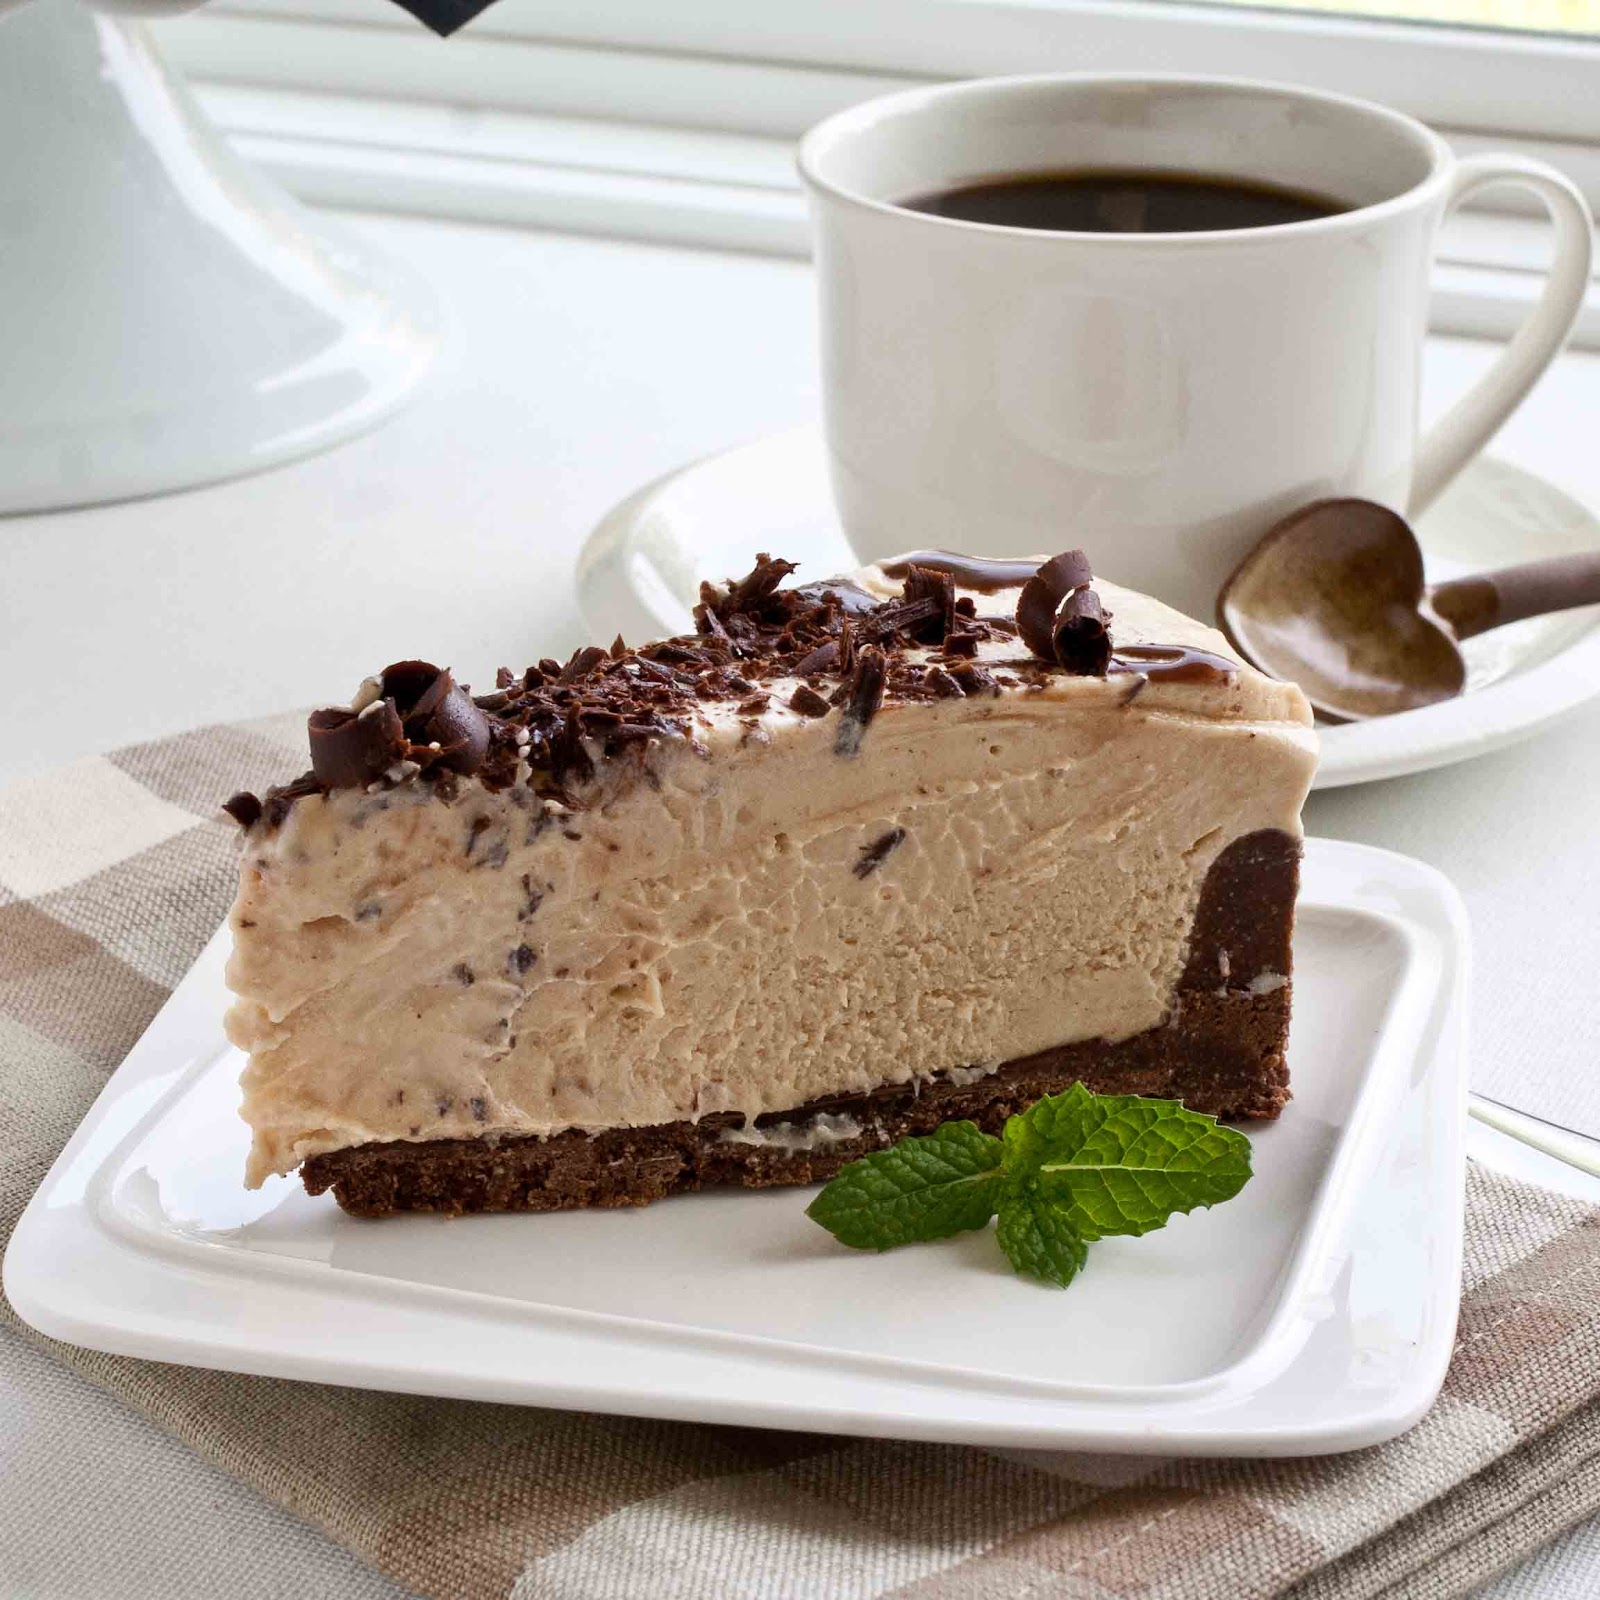 FOODjimoto: Creamy Peanut Butter Pie for Mikey